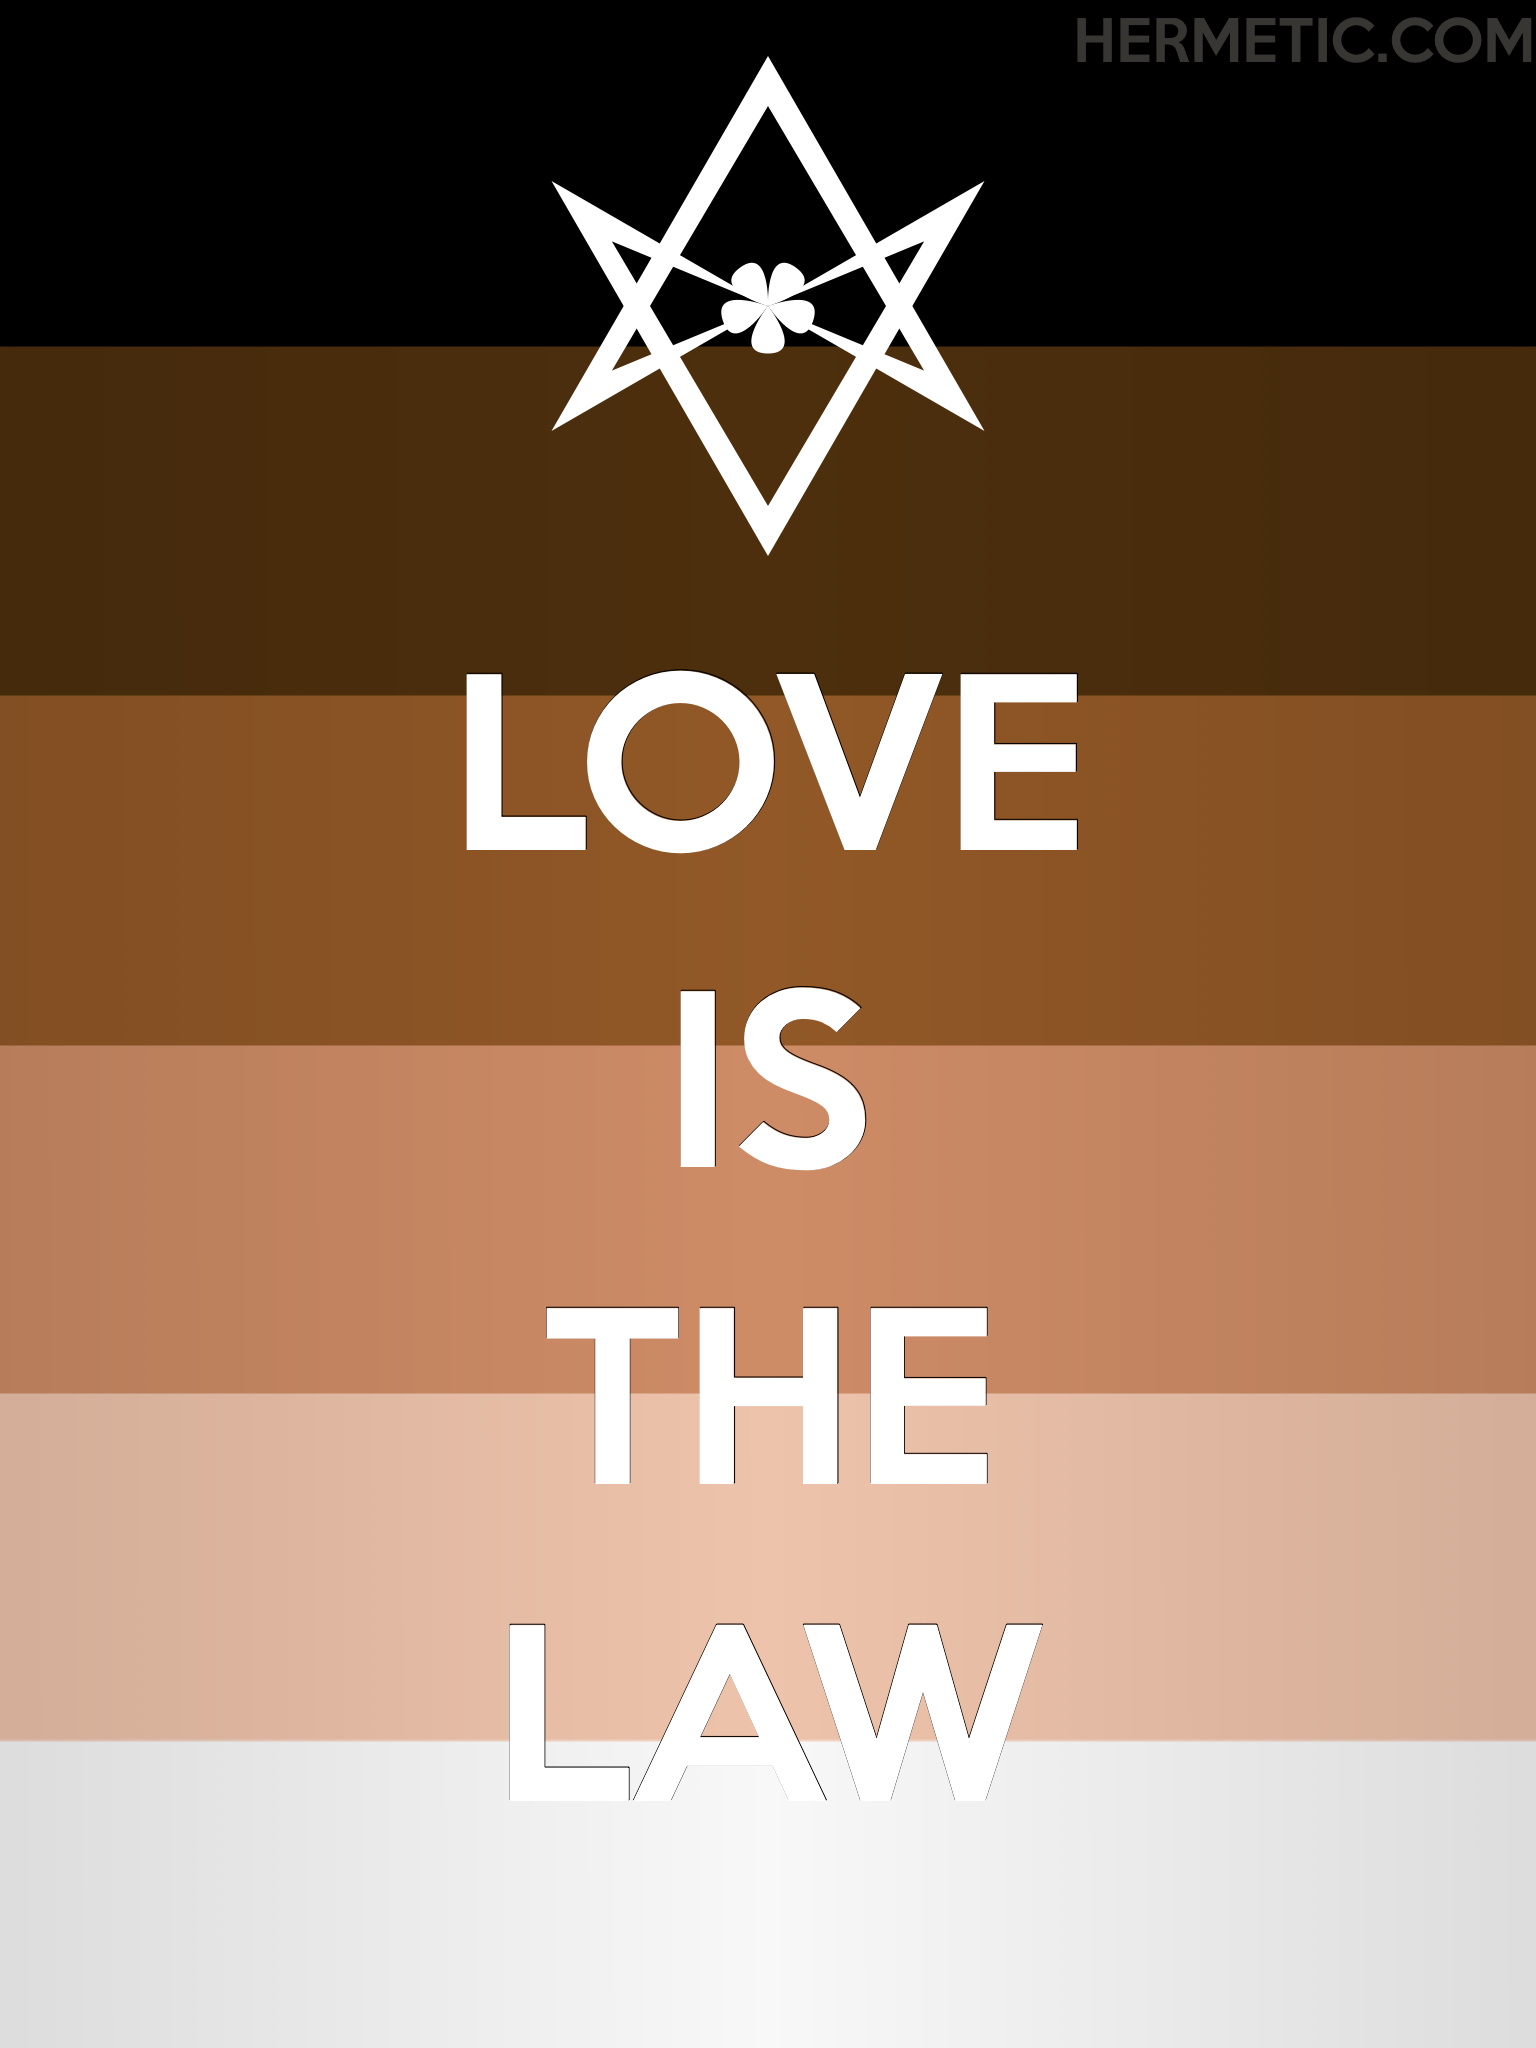 Unicursal LOVE IS THE LAW black lives matter propaganda poster from the Office of the Ministry of Information at Hermetic Library